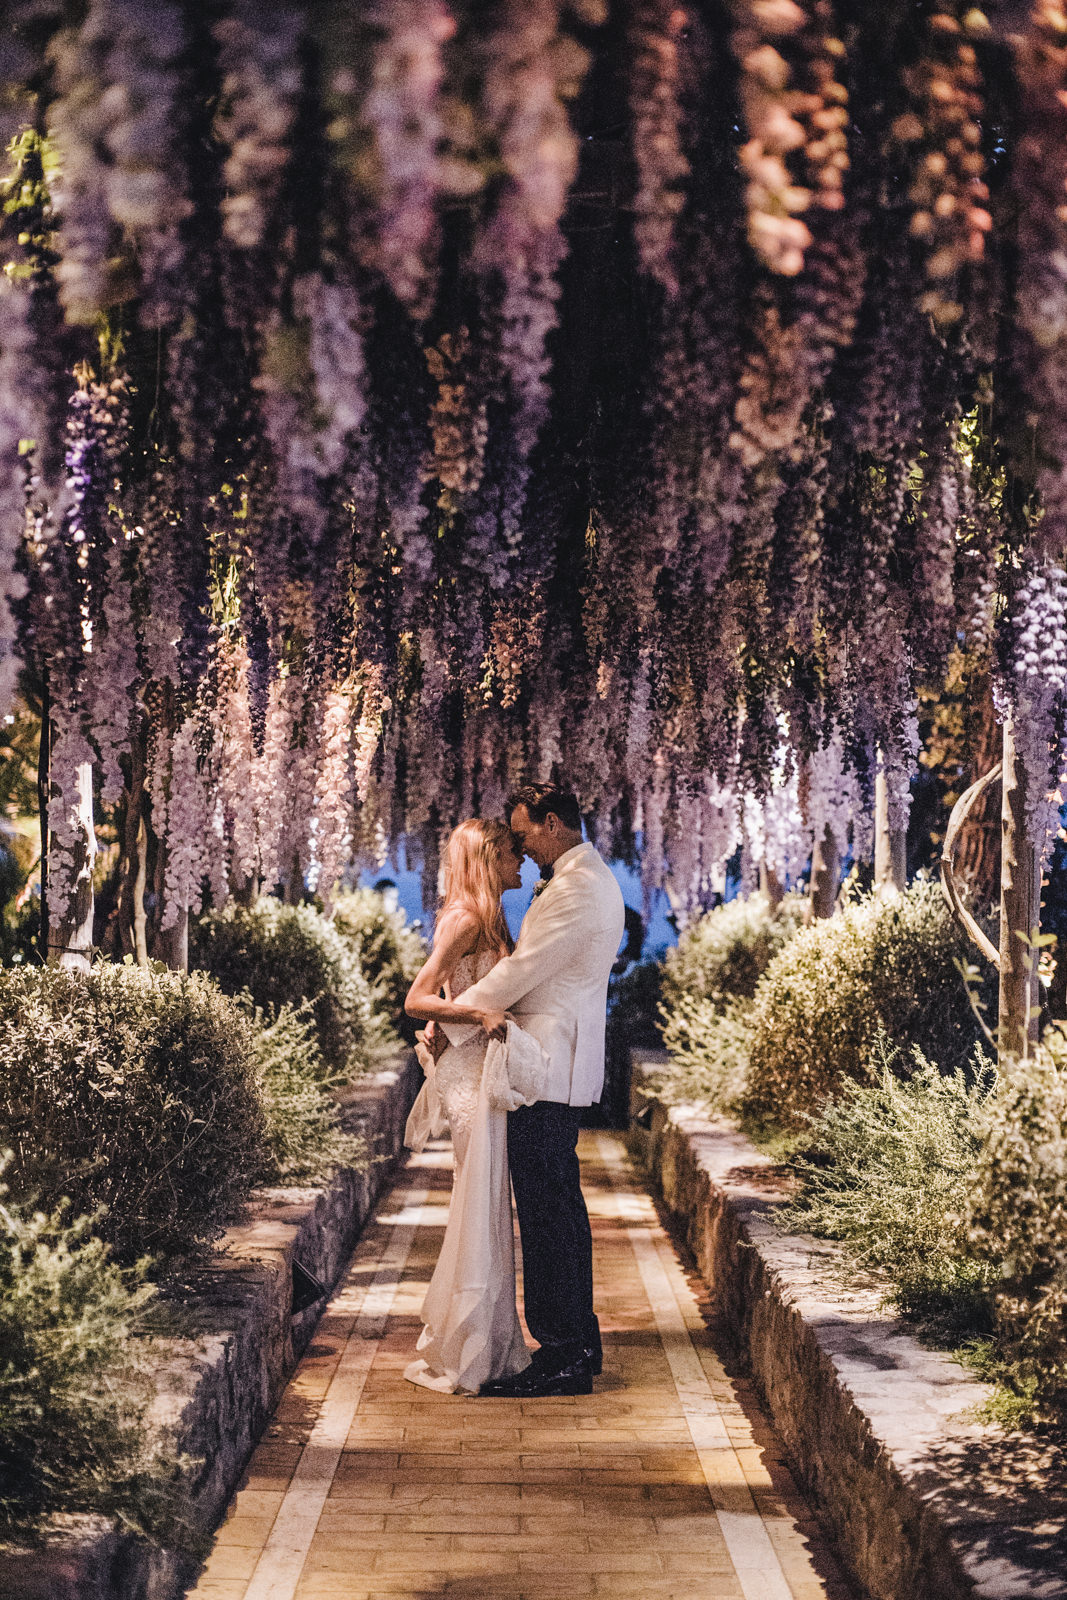 the bride and the groom facing each other under the wisteria by night